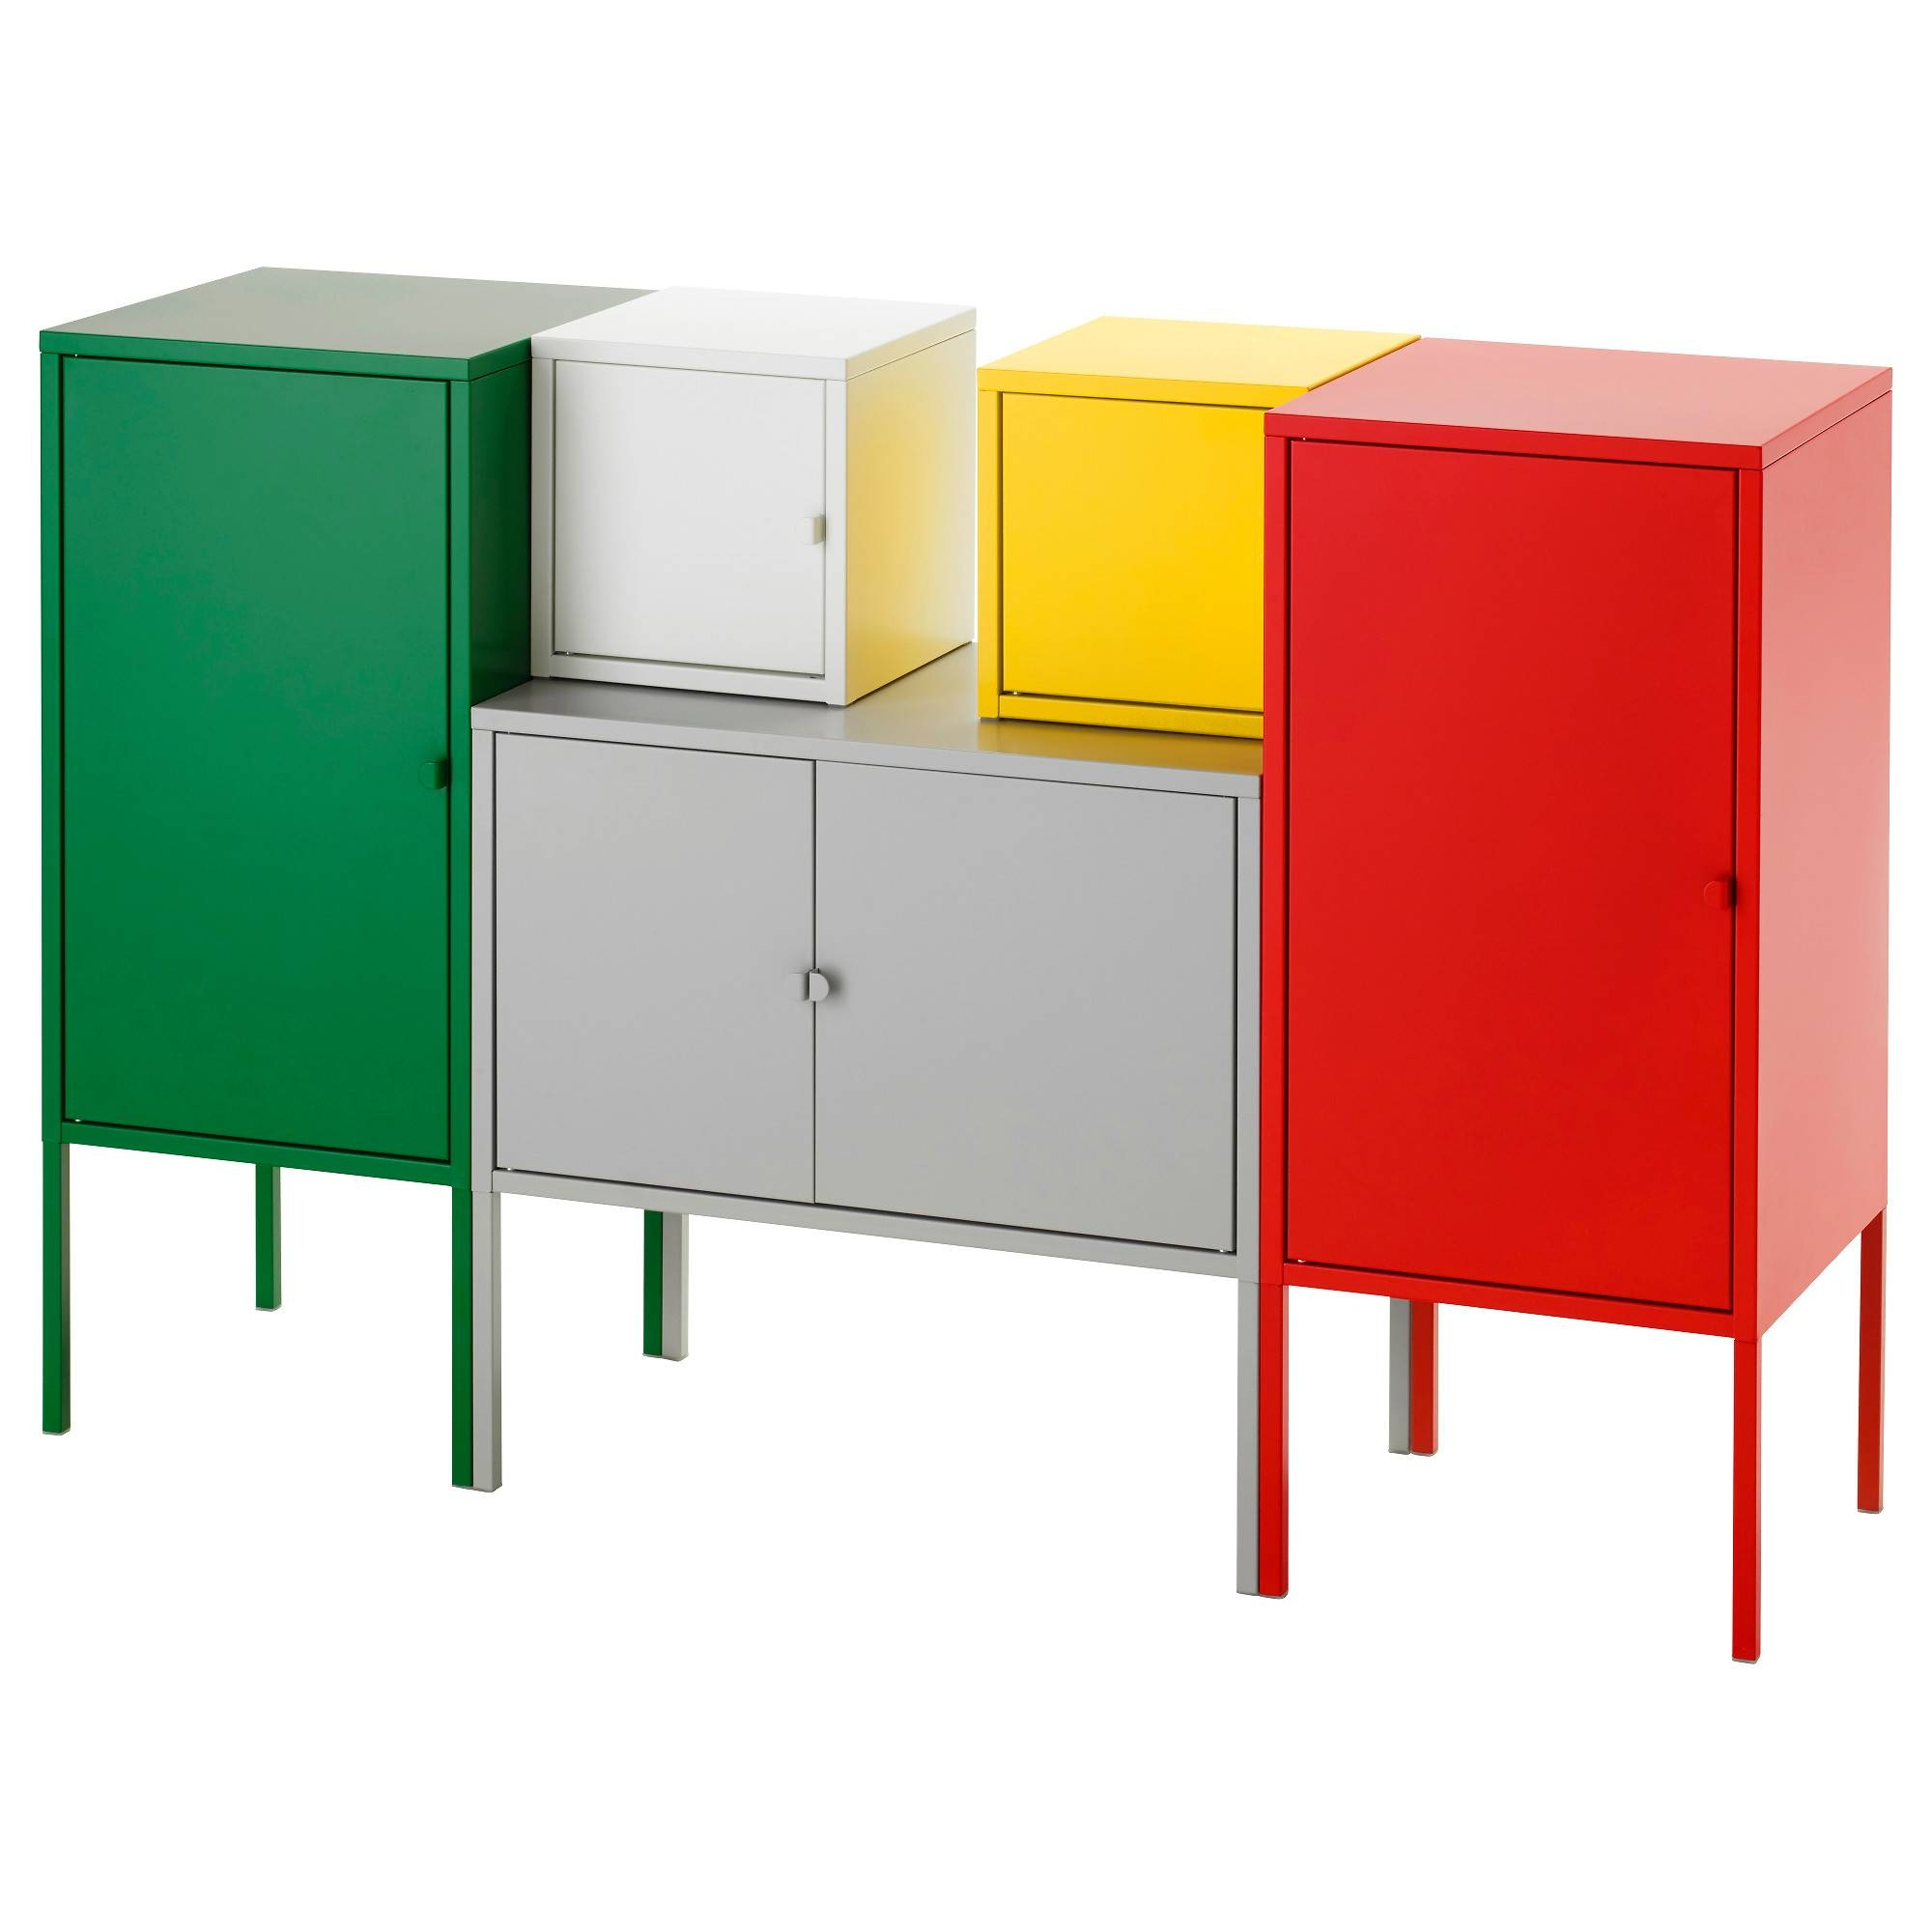 Lixhult Storage Combination White/red/yellow/green/grey 130X82 Cm in Ikea Red Sideboards (Image 11 of 15)